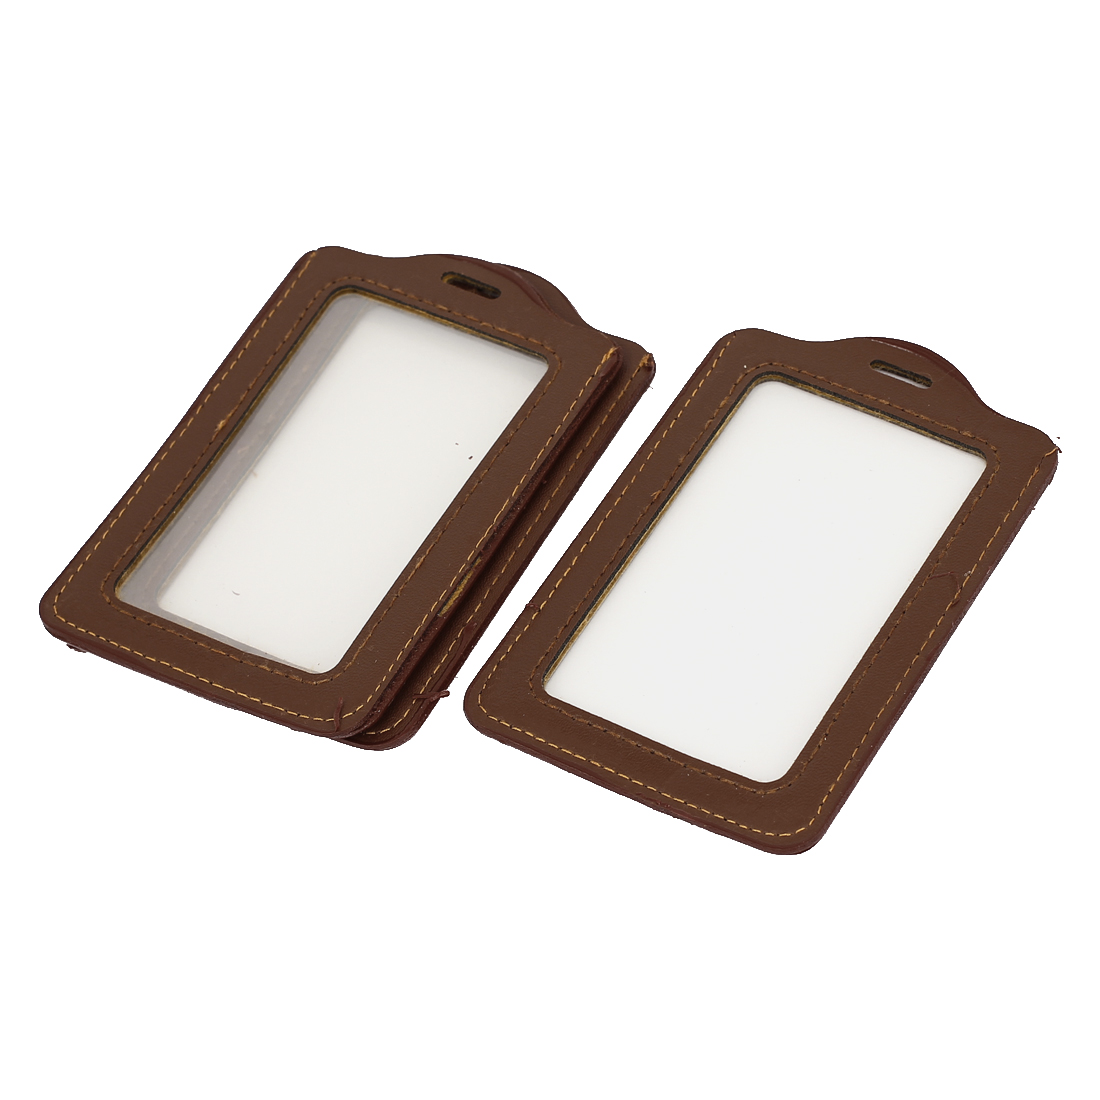 School Office Faux Leather Vertical Name Tag ID Badge Card Holder Carrier Brown 3pcs